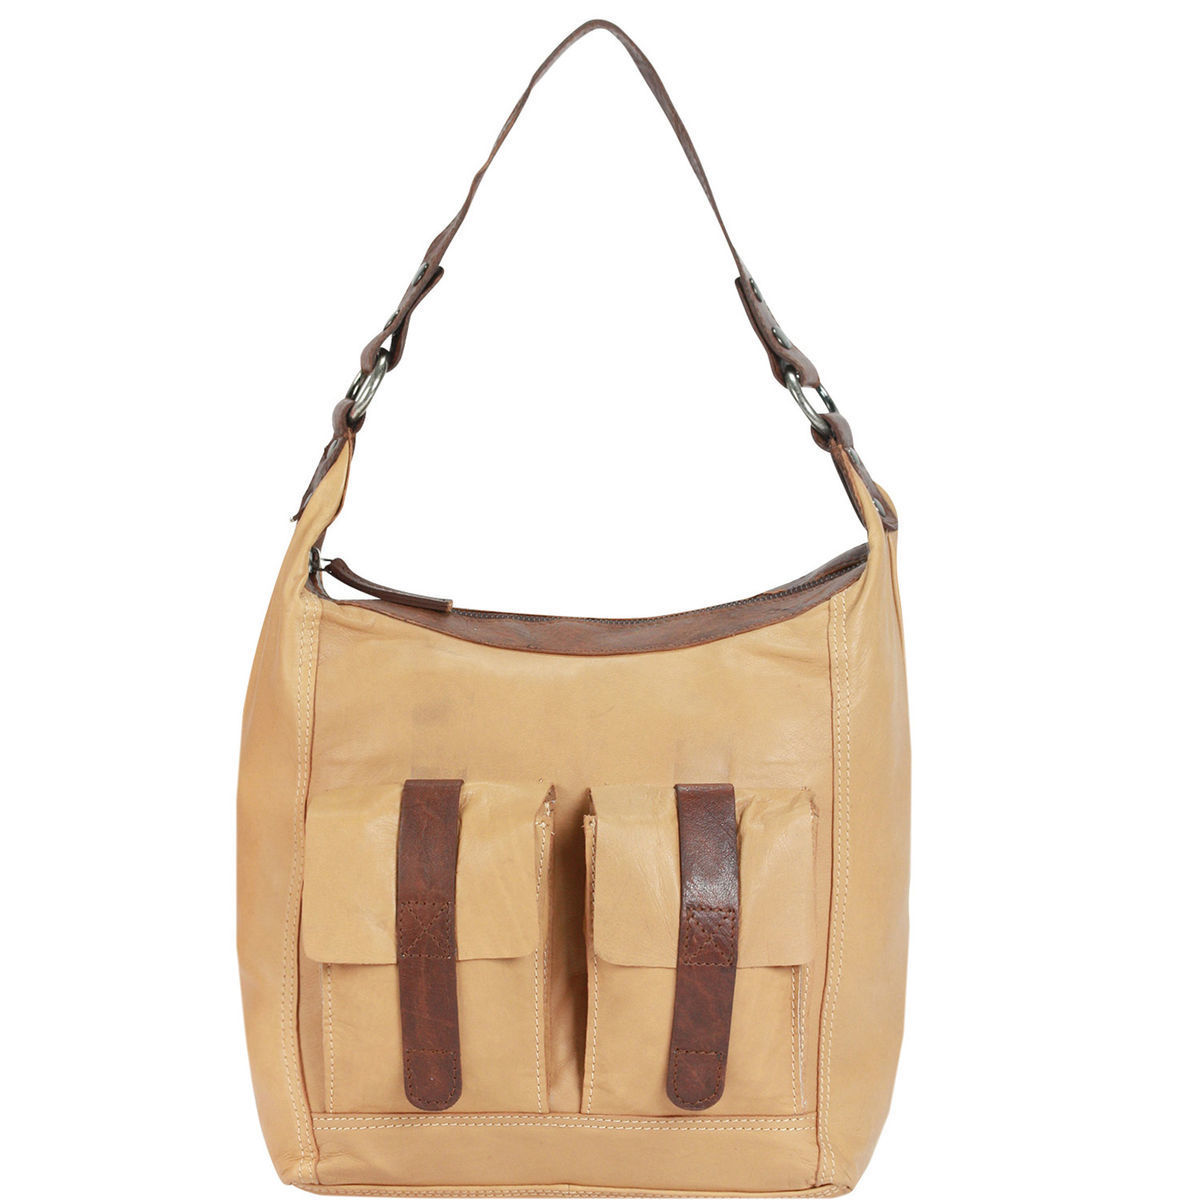 Spikes & Sparrow Savannah Bronco Handtasche Shopper Leder 32 cm, camel